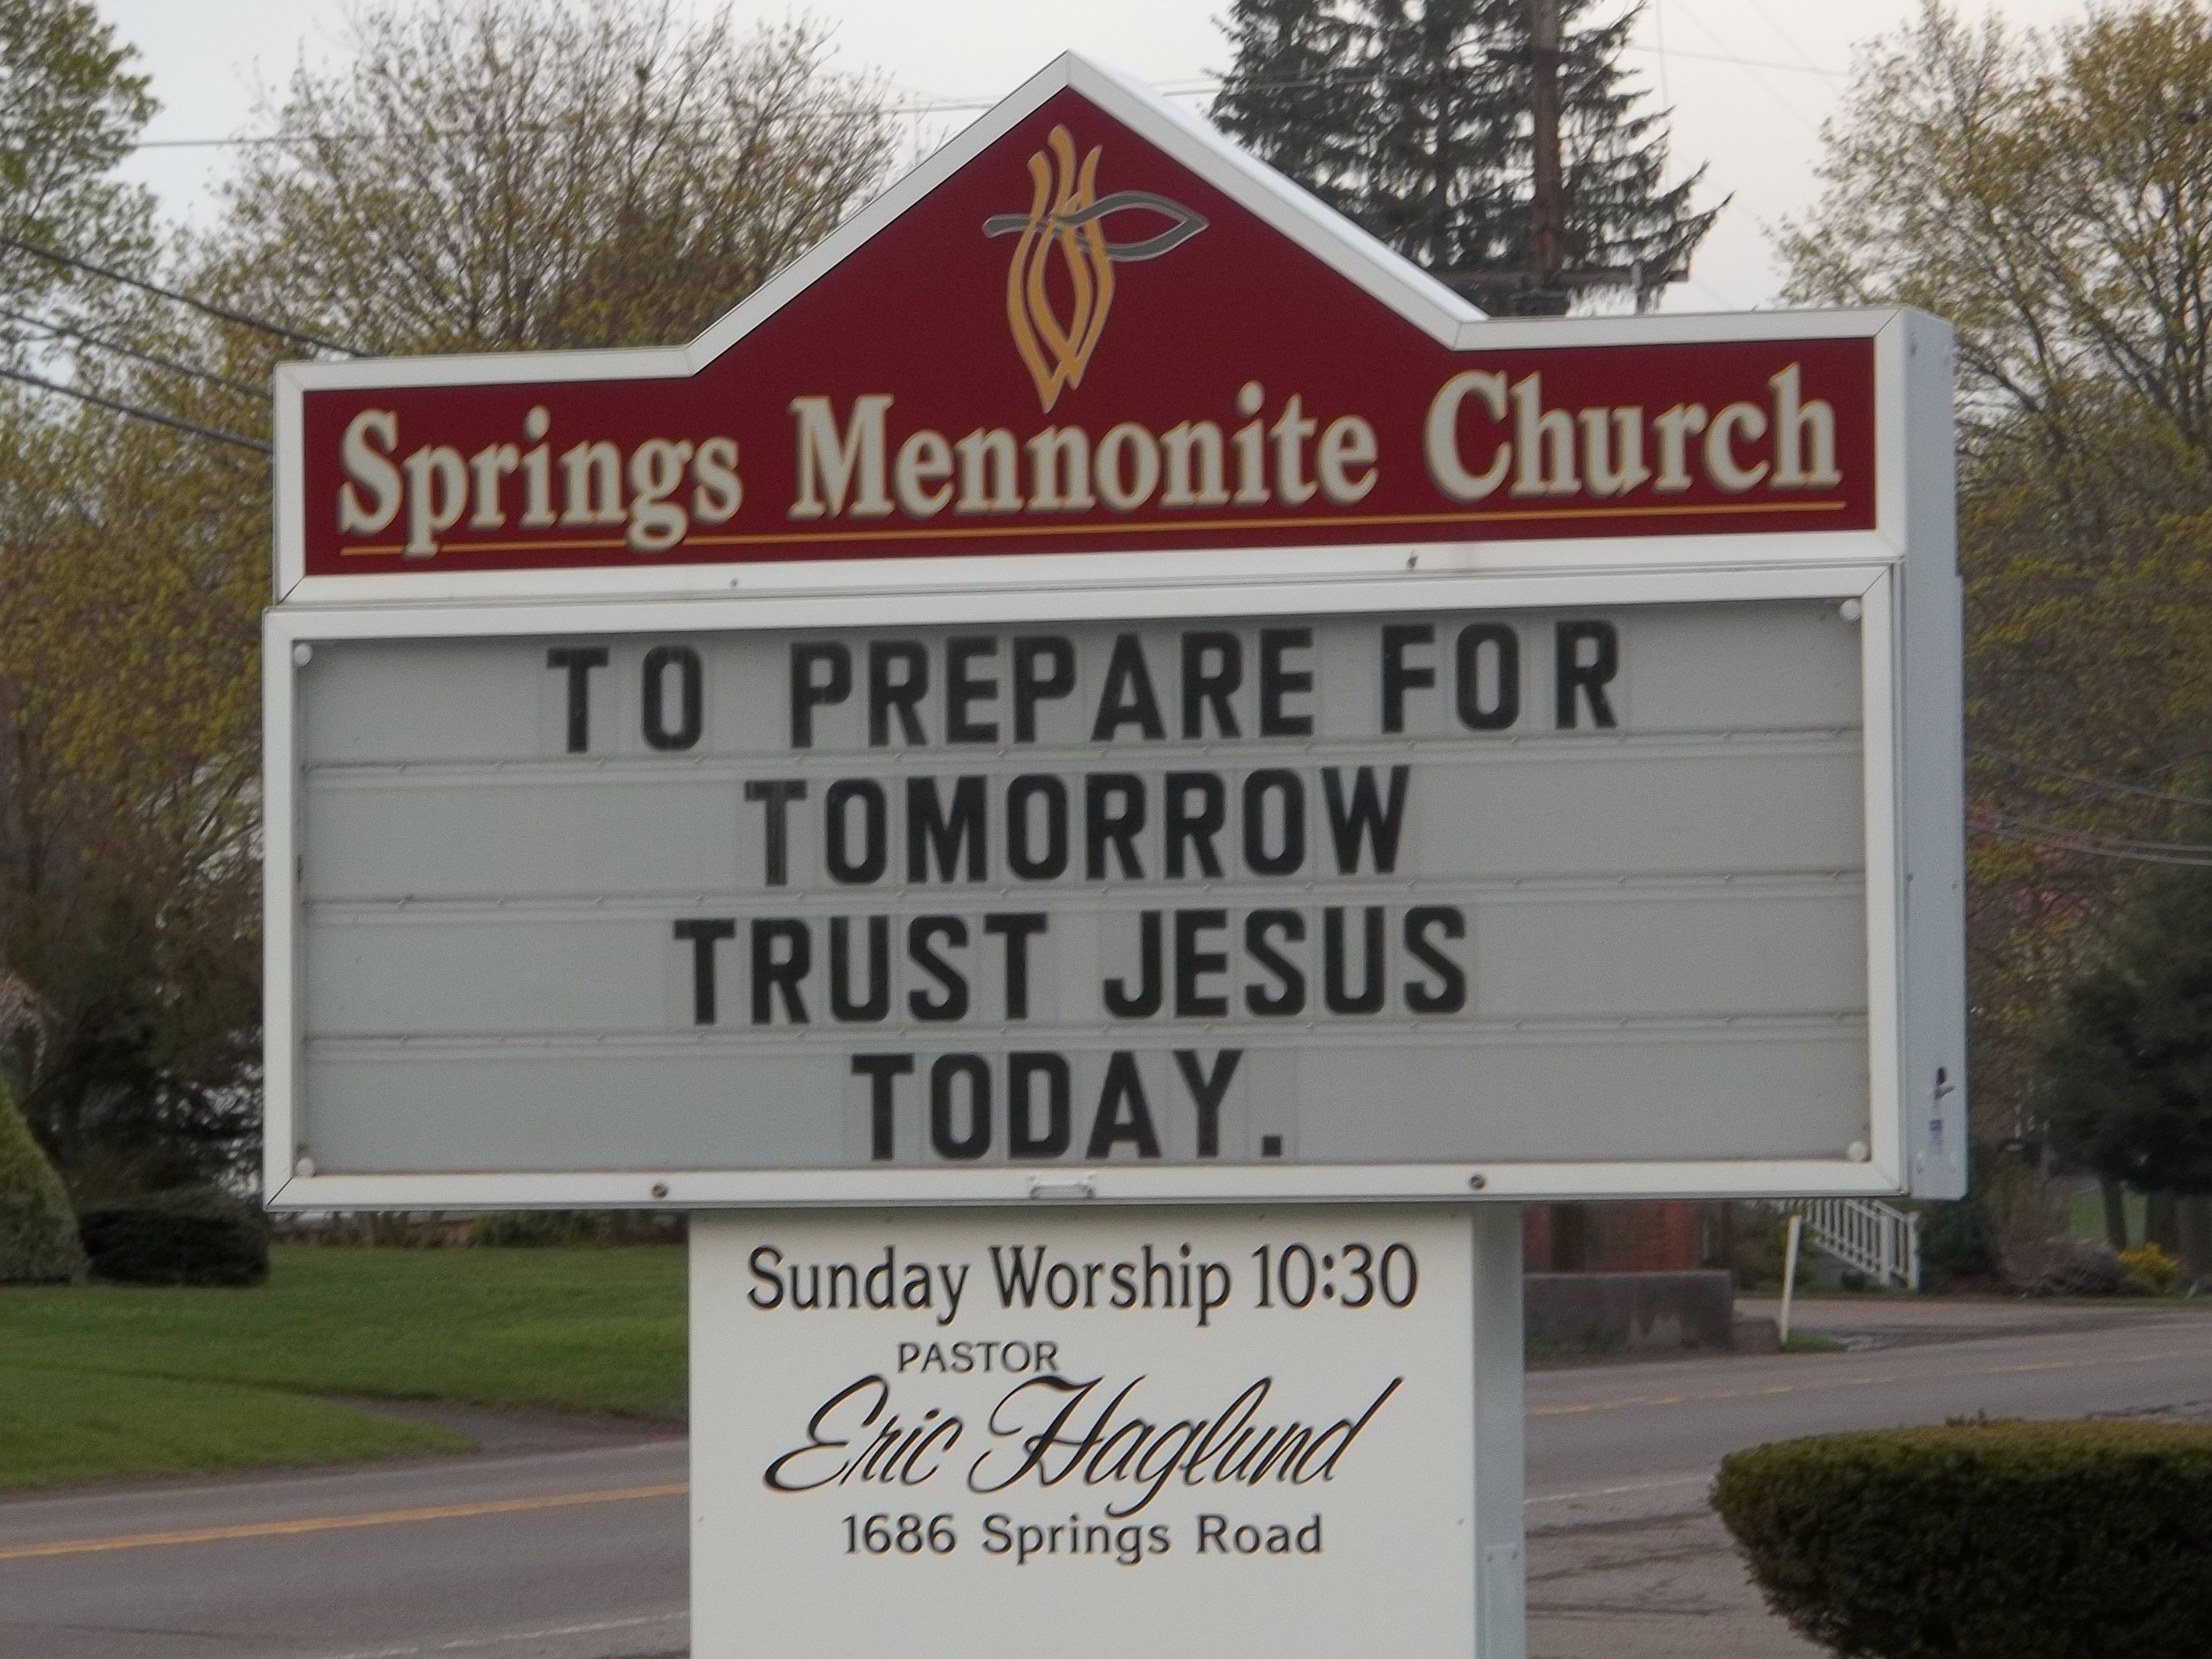 Church Sign Quotes To Prepare For Tomorrow Church Signs  Pinterest  Church